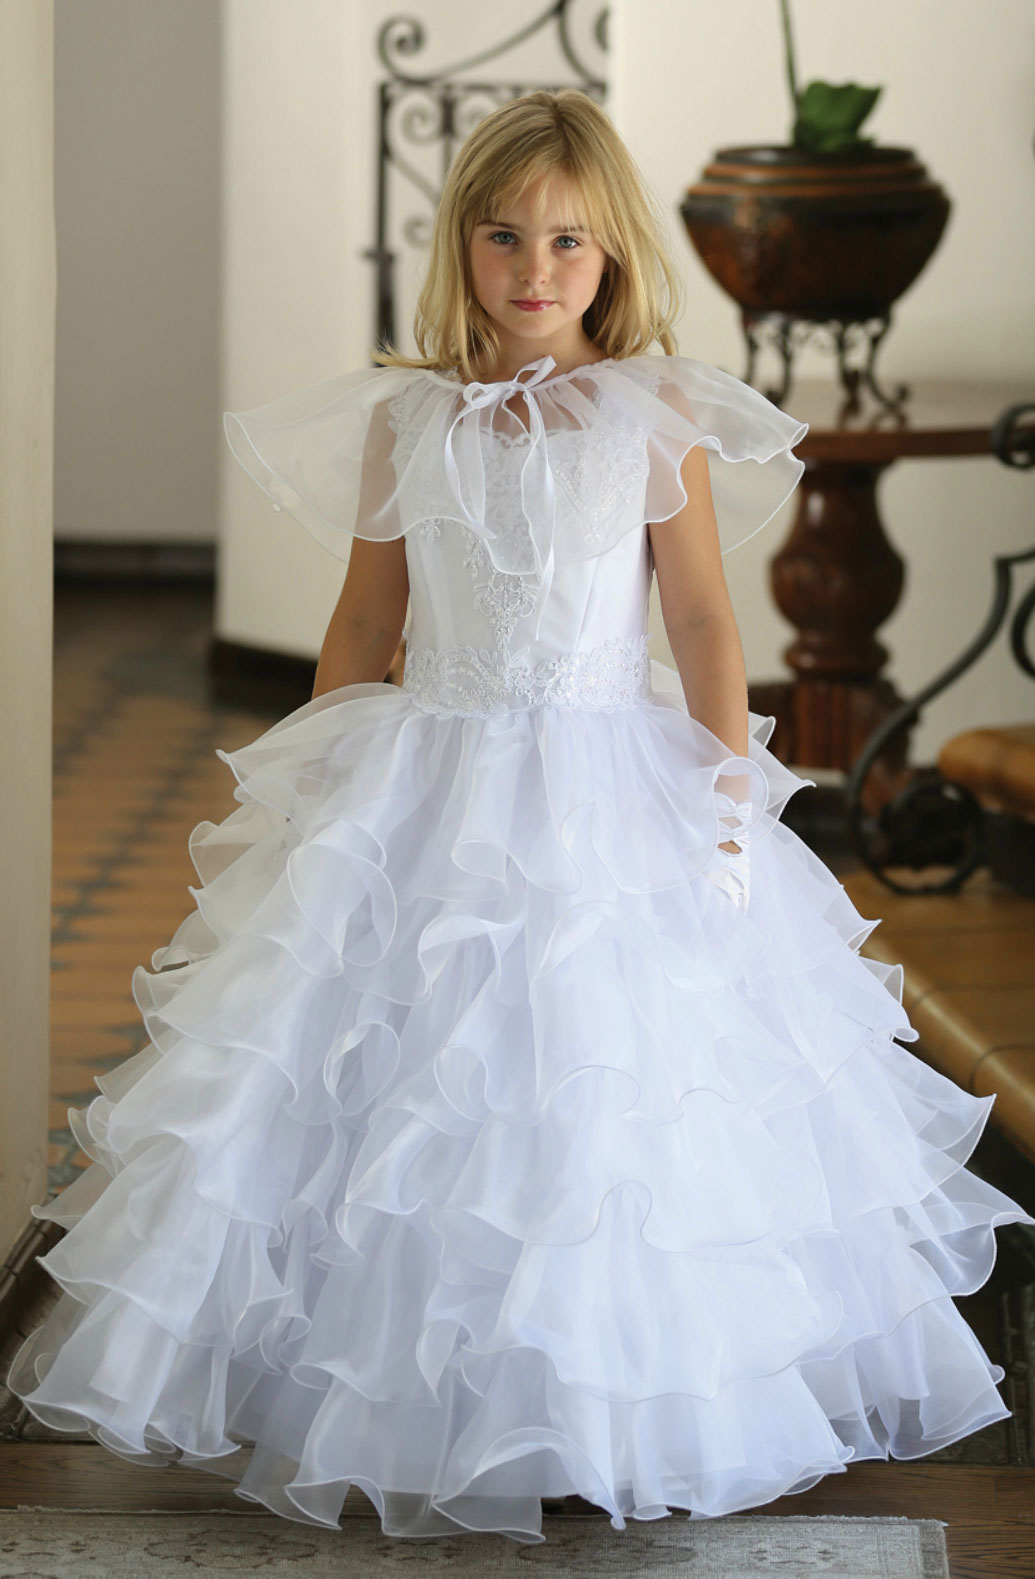 Ag Dr1710 Girls Dress Style Dr1710 White Satin Dress